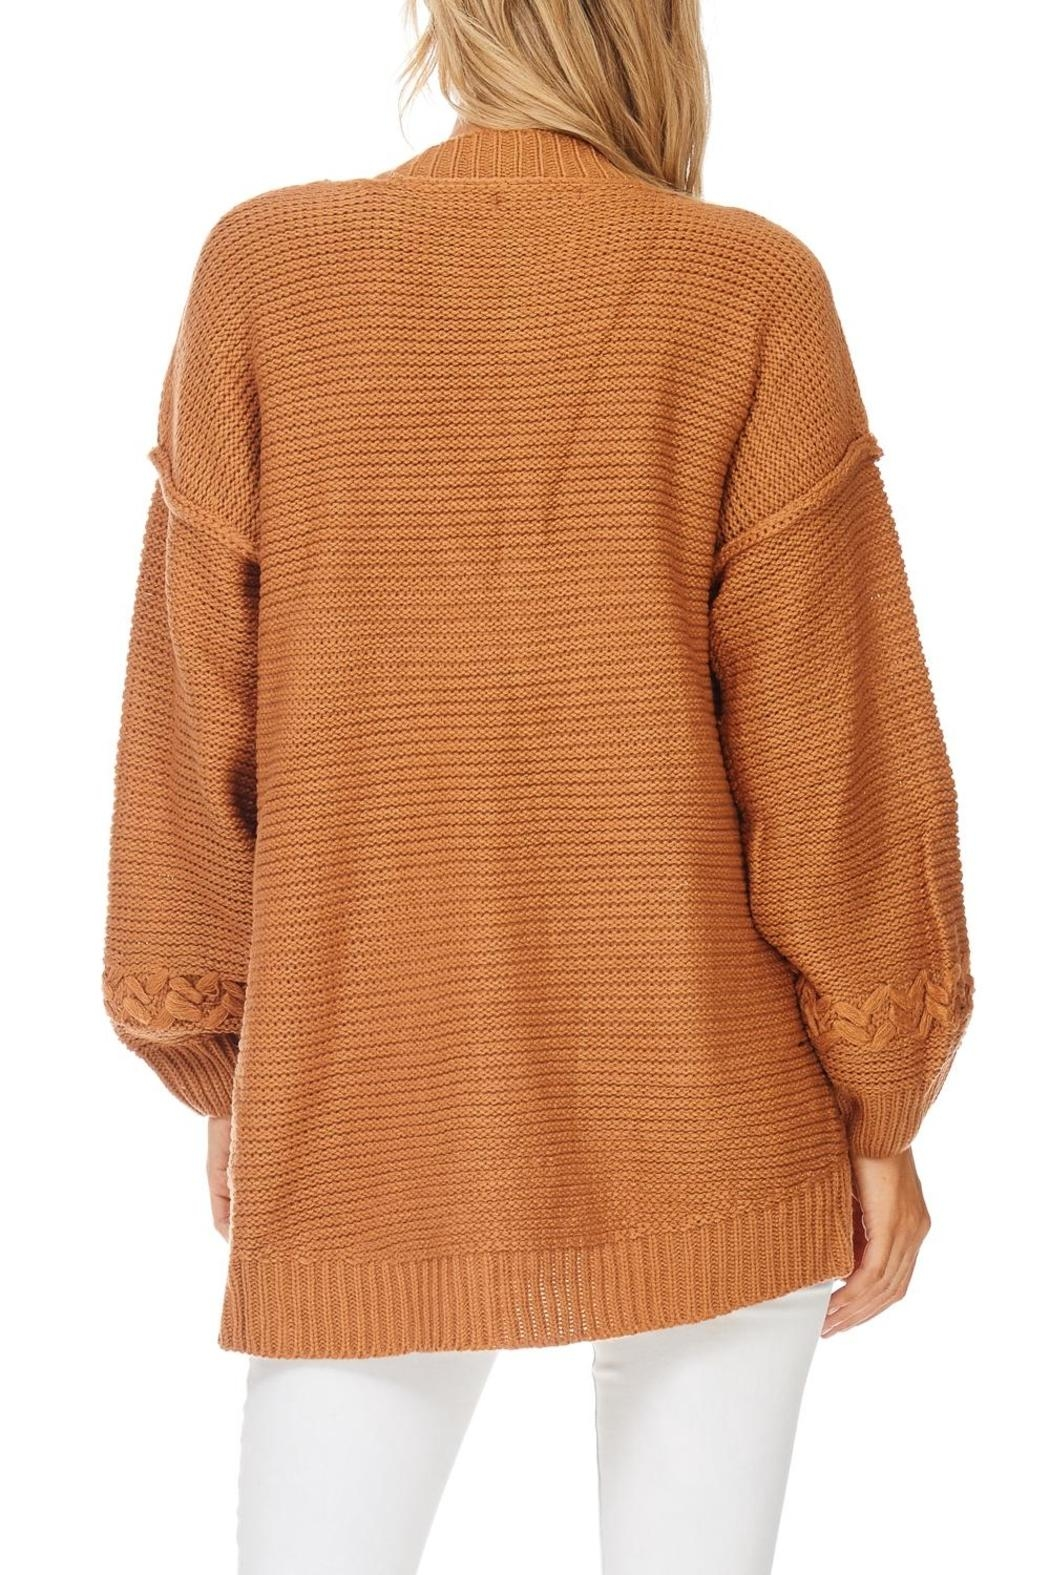 LoveRiche Camel Boyfriend Cardigan - Side Cropped Image